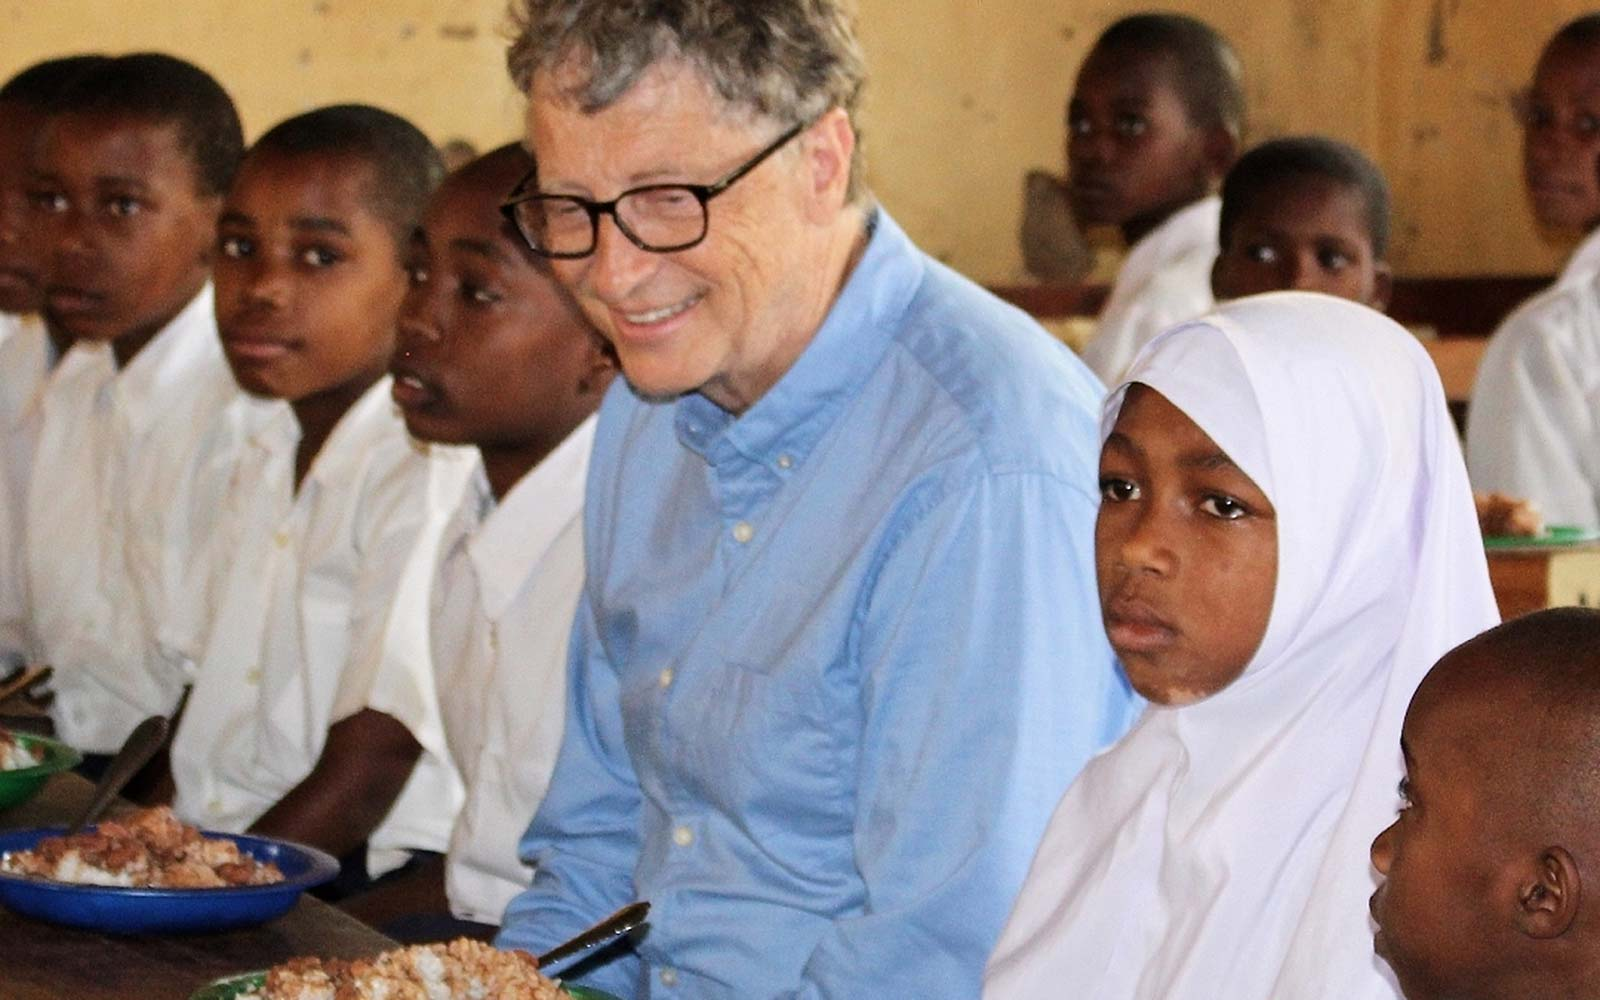 Bill Gates Joined Instagram on His Trip to Tanzania